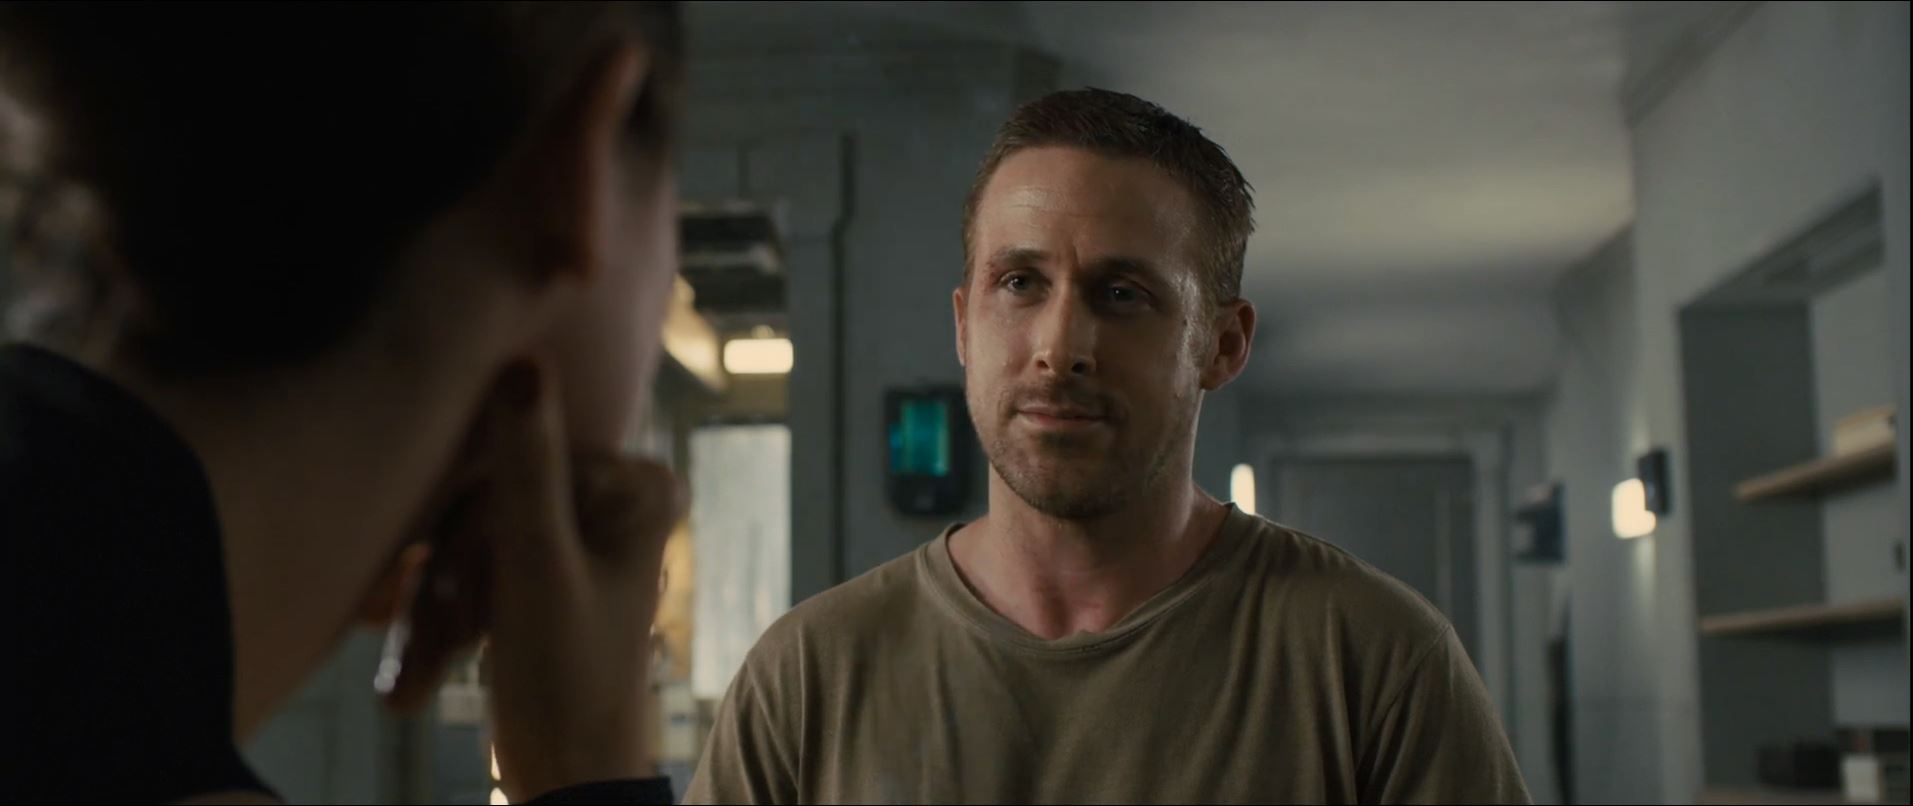 Ryan Gosling as officer K in Blade Runner 2049